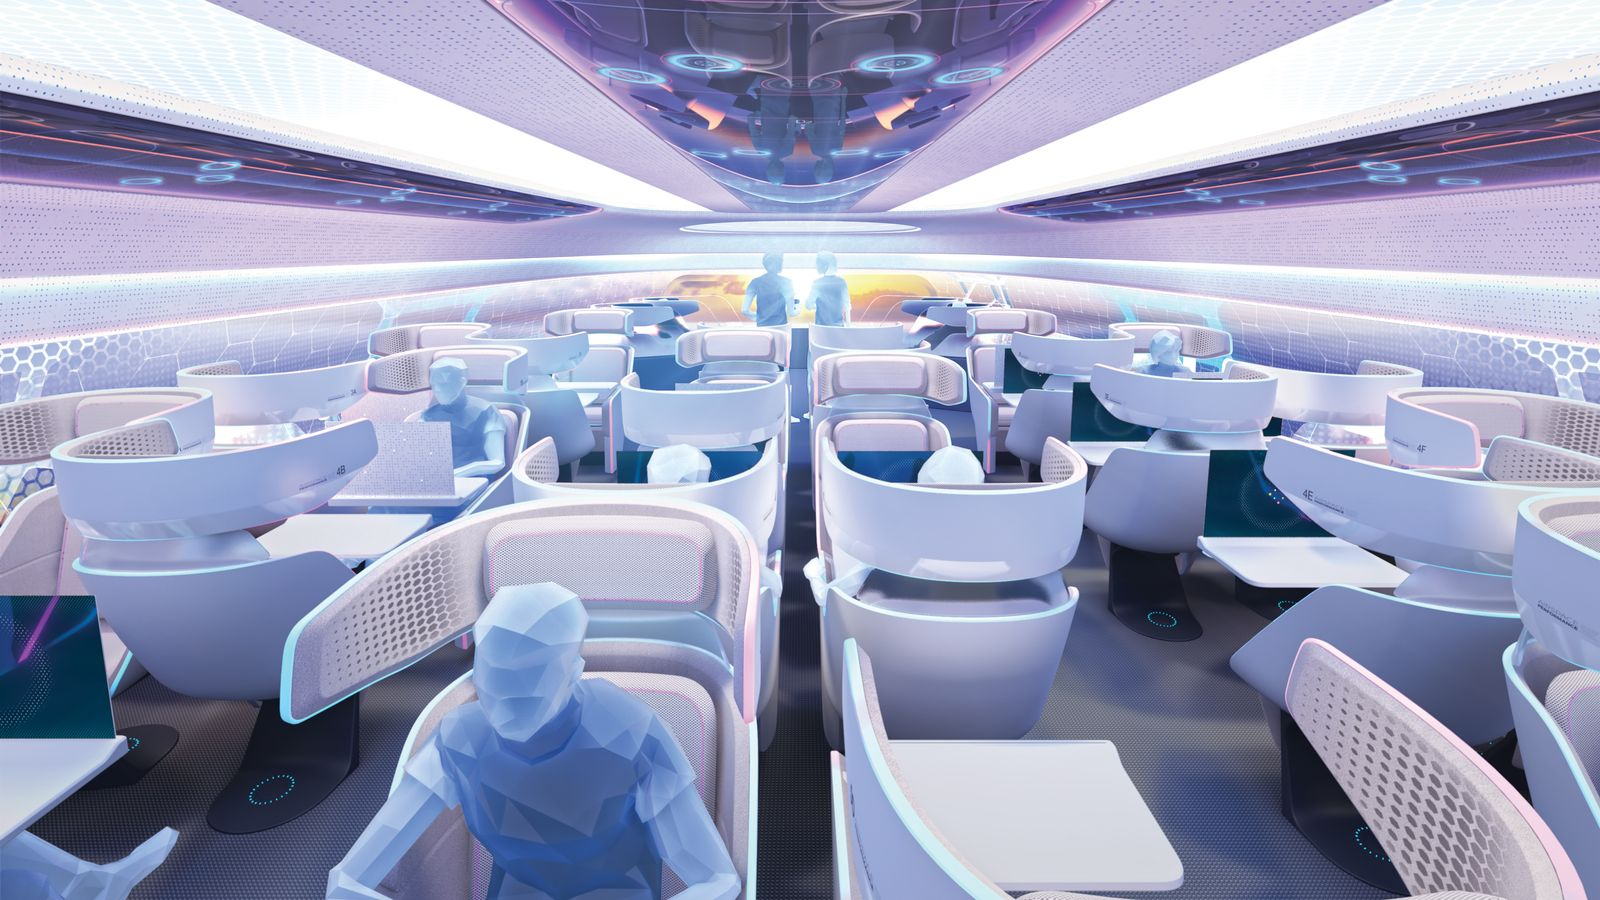 Crystal Cabin Award / Airbus / Airspace Cabin Vision 2030